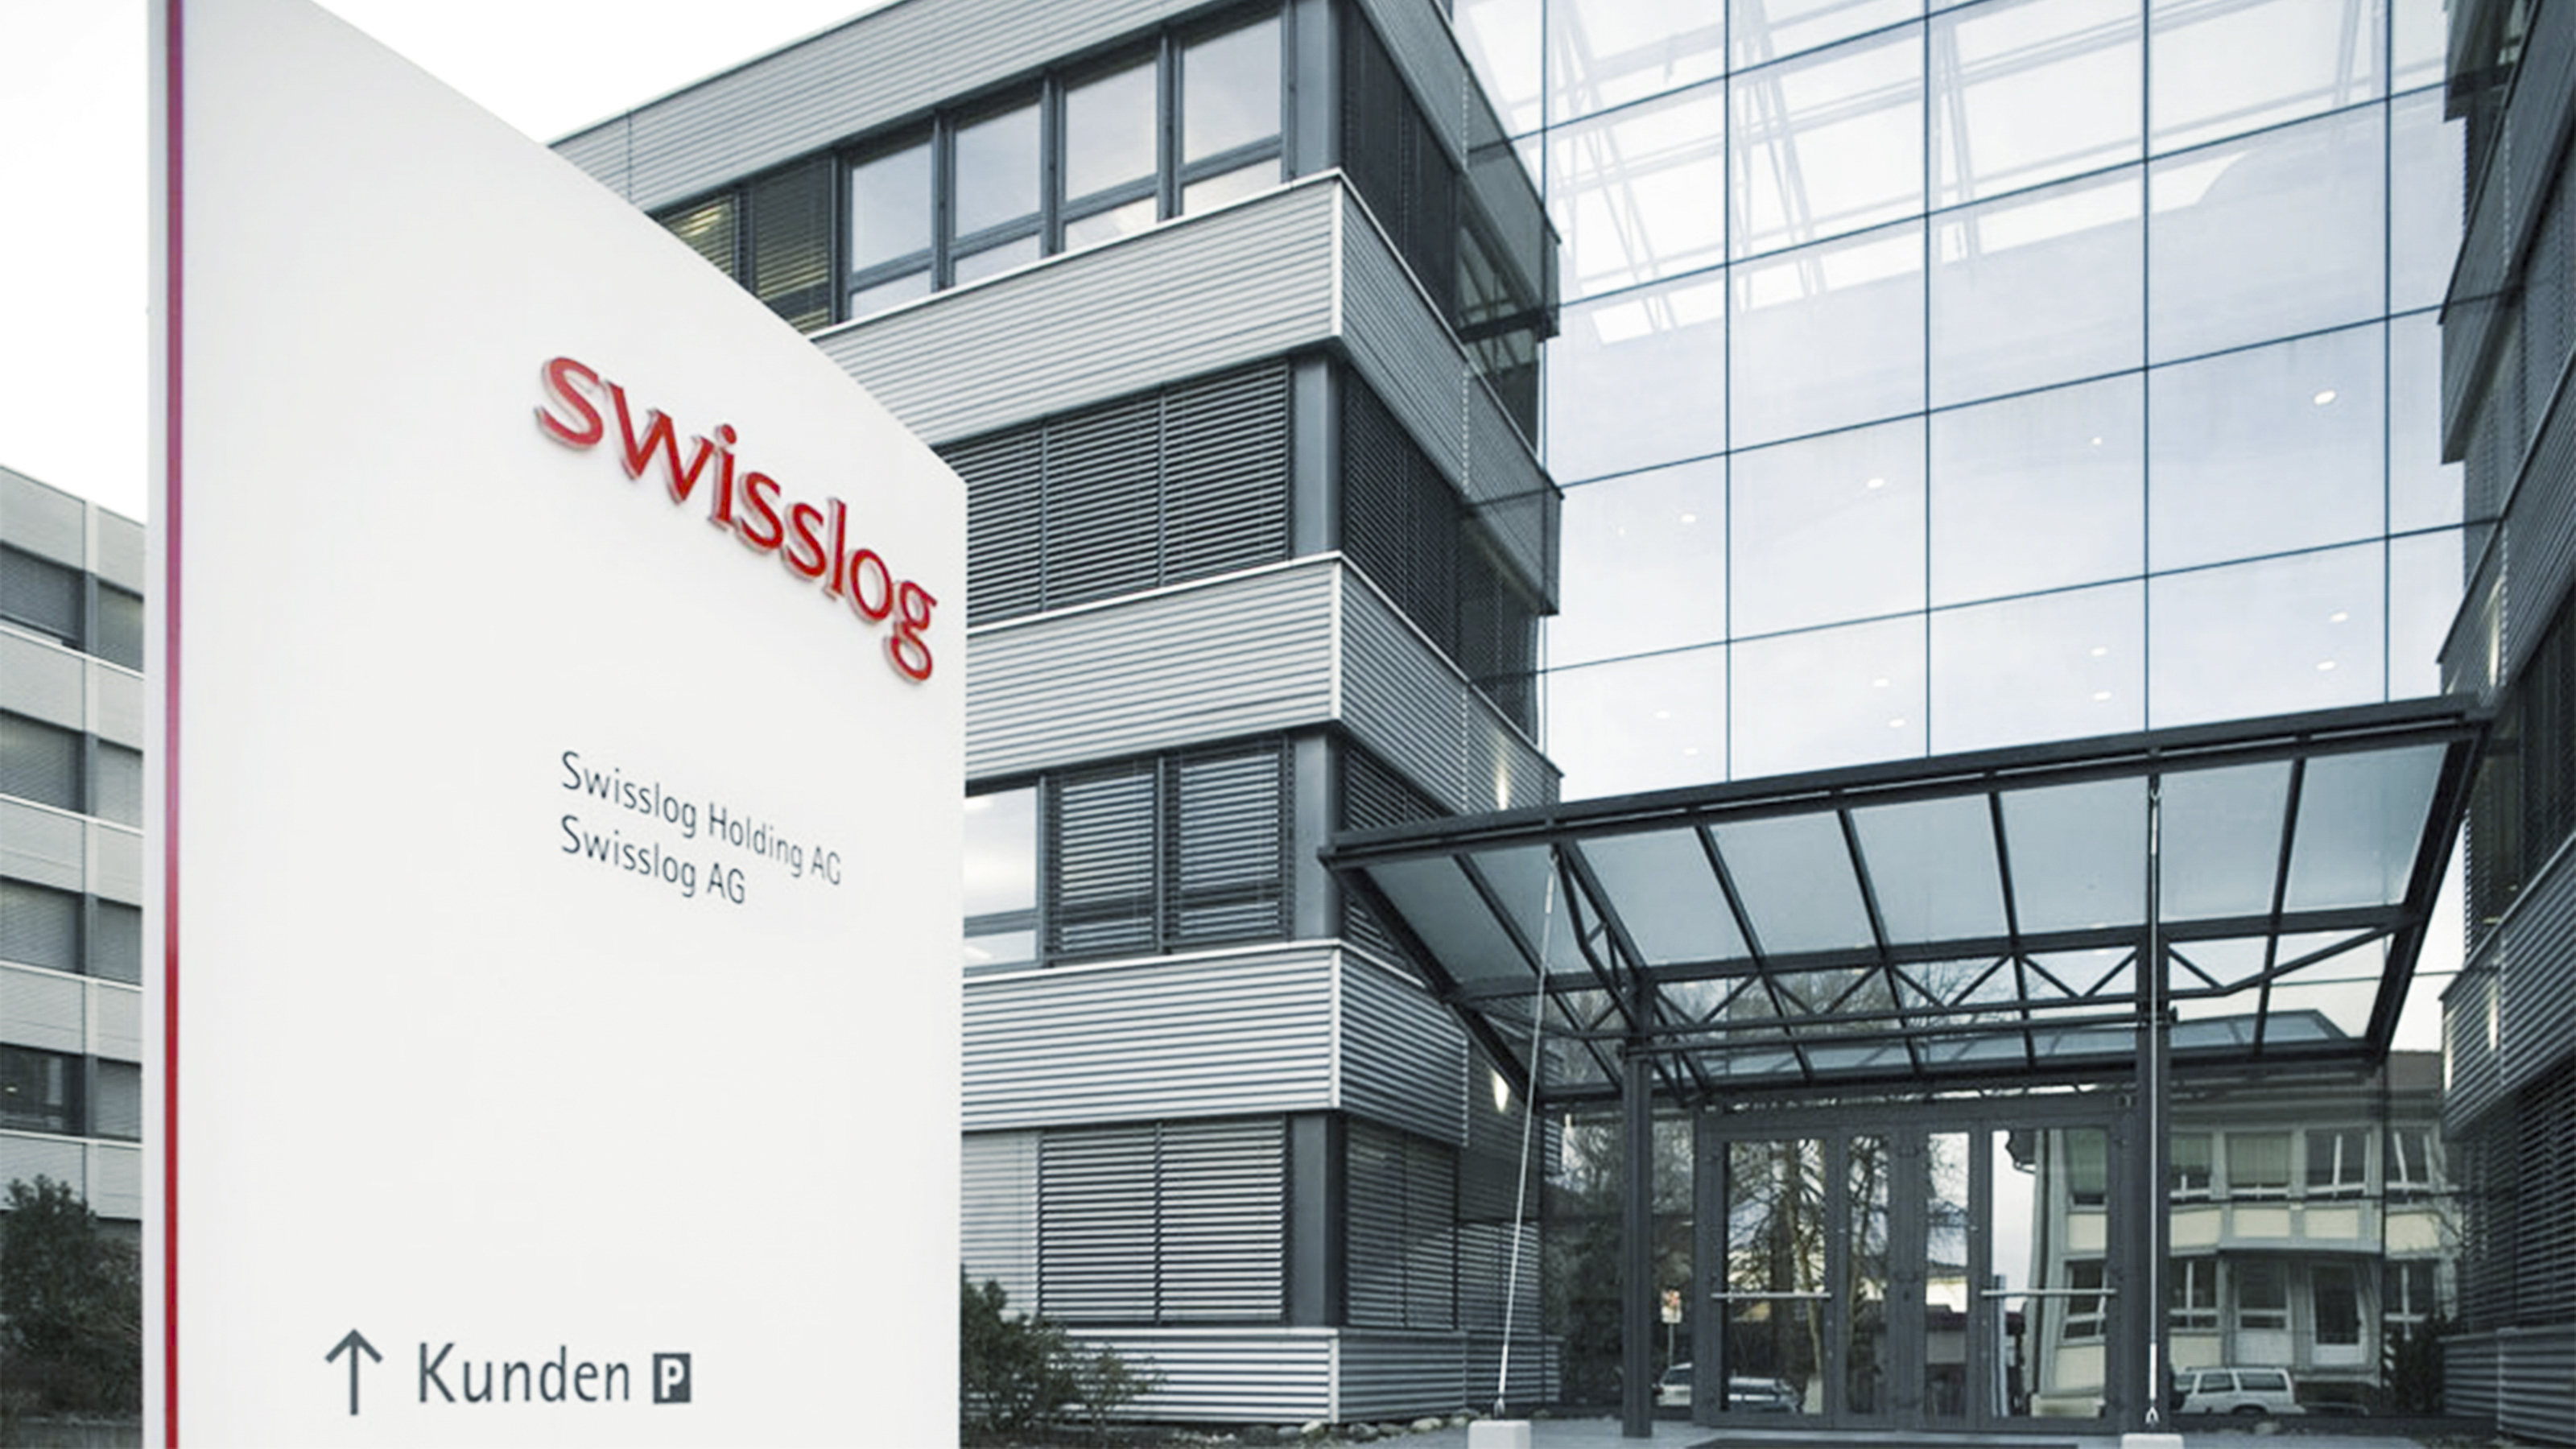 About Swisslog Over 100 Years Experience In Automation